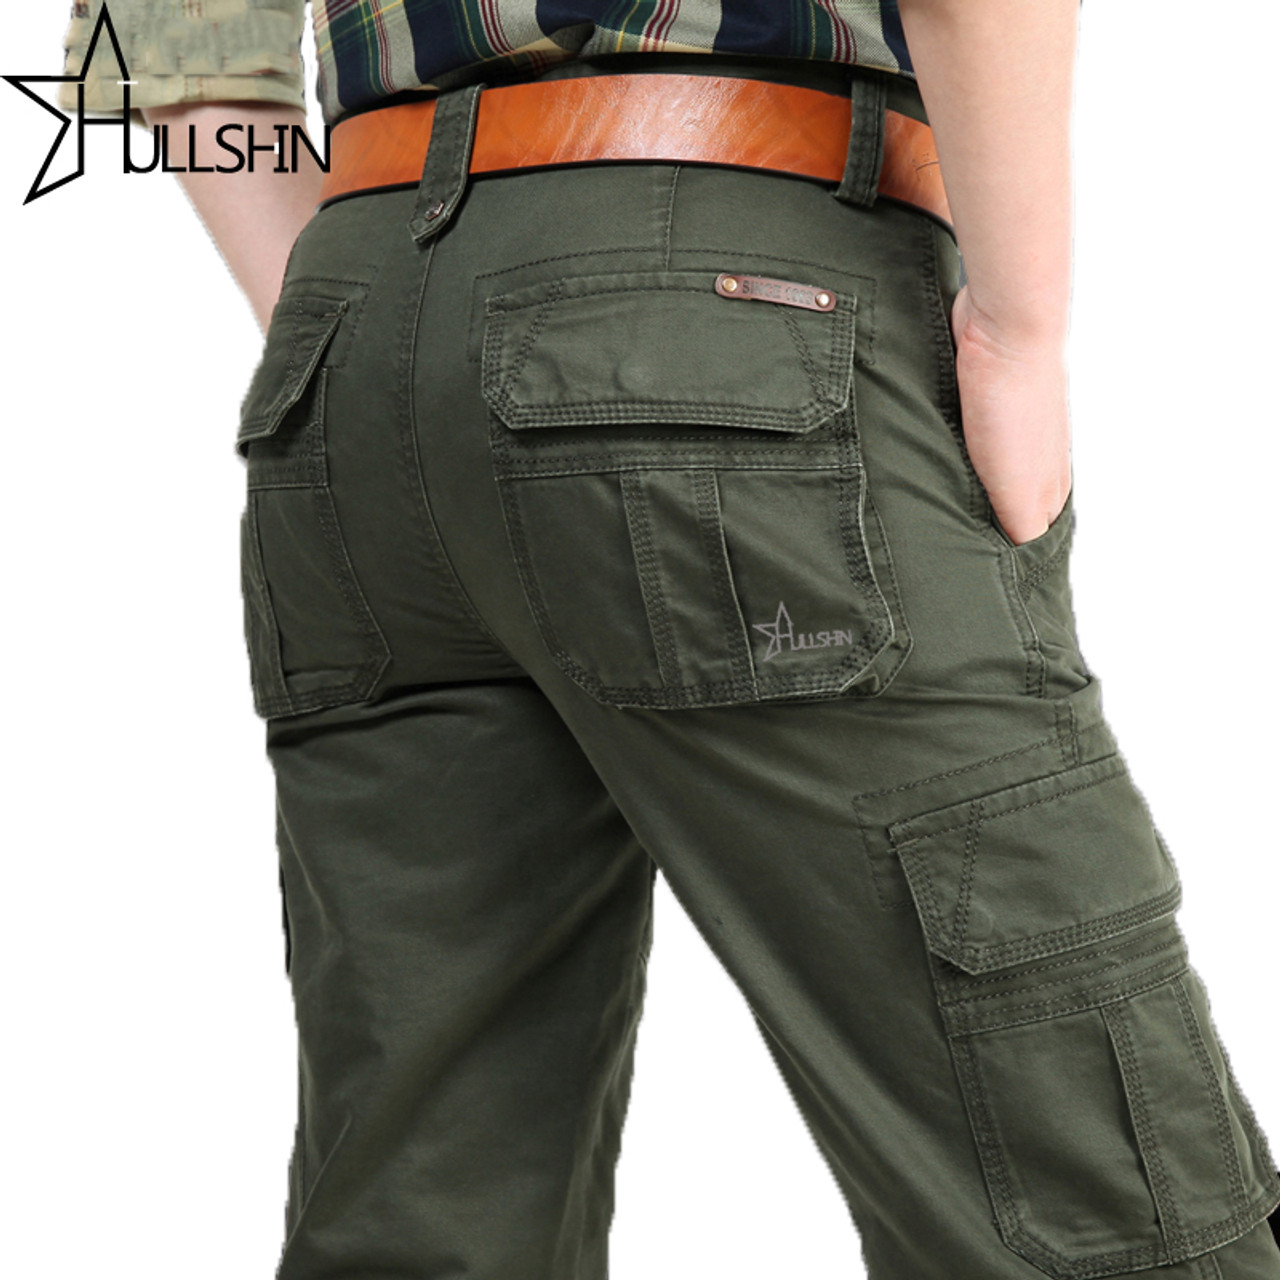 ab19af7aa10da 2018 Brand Mens fashion Military Cargo Pants Multi-pockets Baggy Men Pants  Casual Trousers Overalls ...